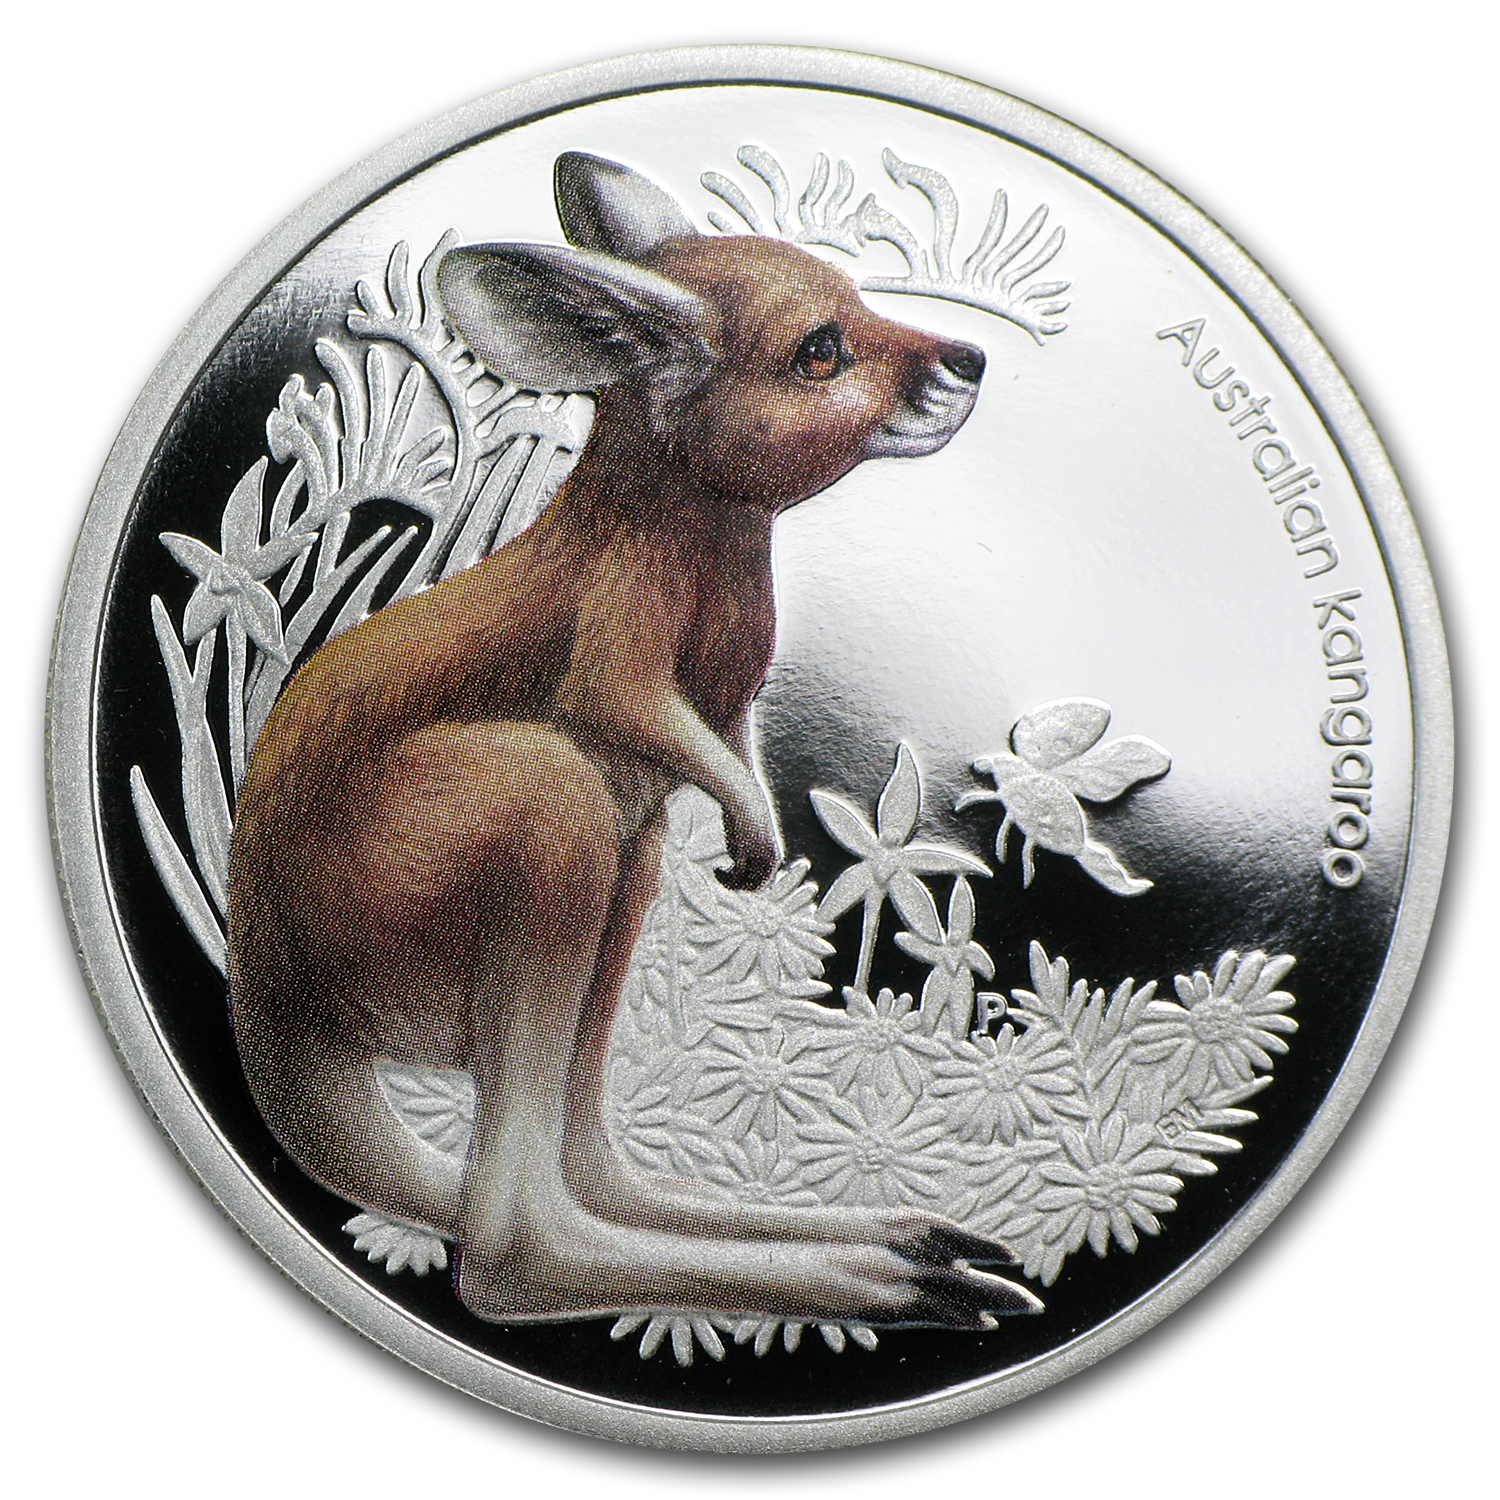 2010 Australia 1/2 oz Silver Bush Babies Kangaroo Proof